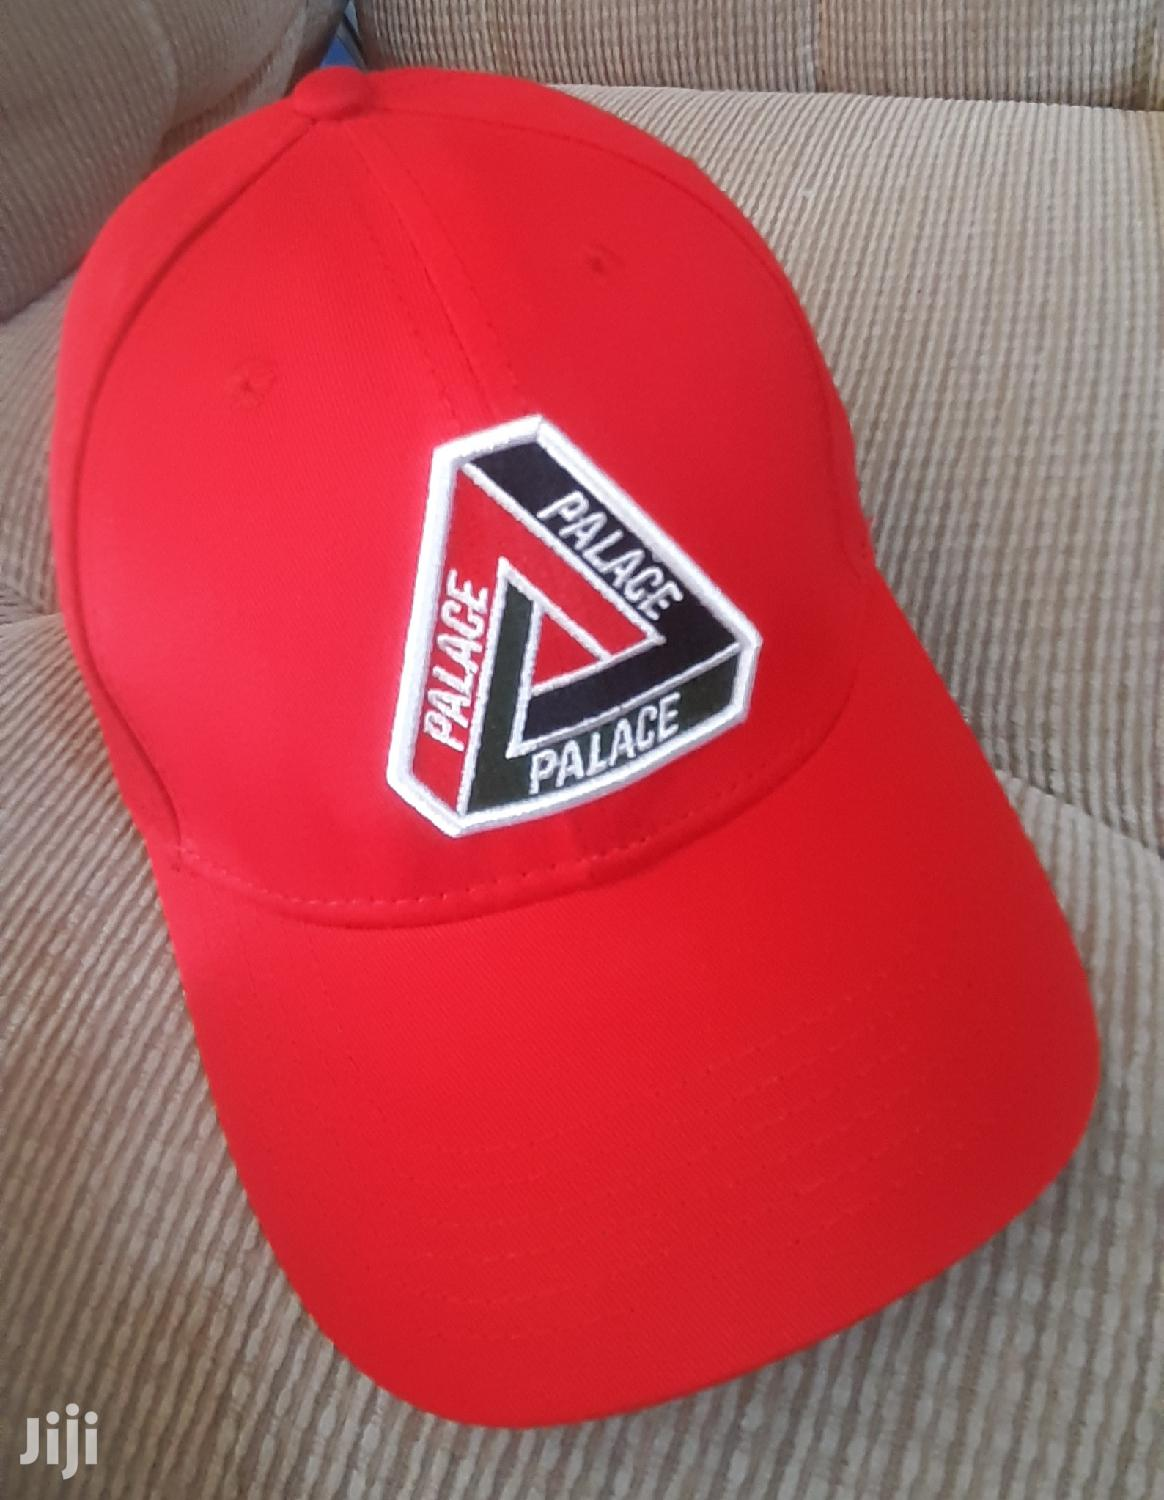 Designer Caps | Clothing Accessories for sale in Achimota, Greater Accra, Ghana